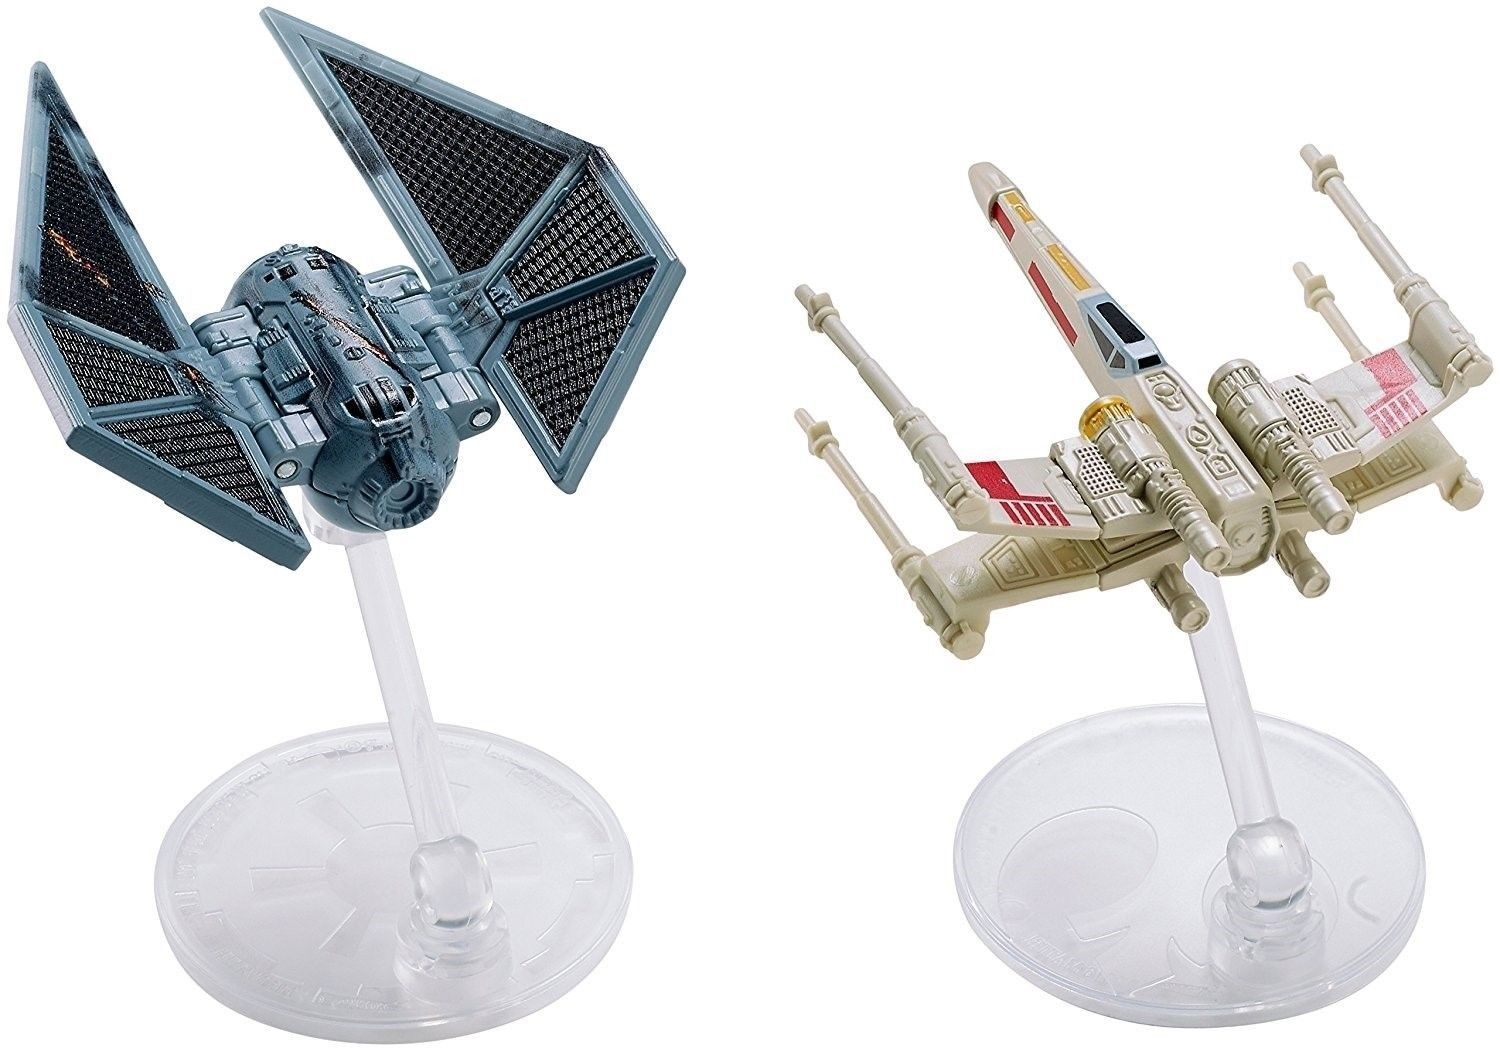 Hot Wheels Star Wars Rogue One Ships Tie Striker vs. X-Wing Vehicle for sale  USA